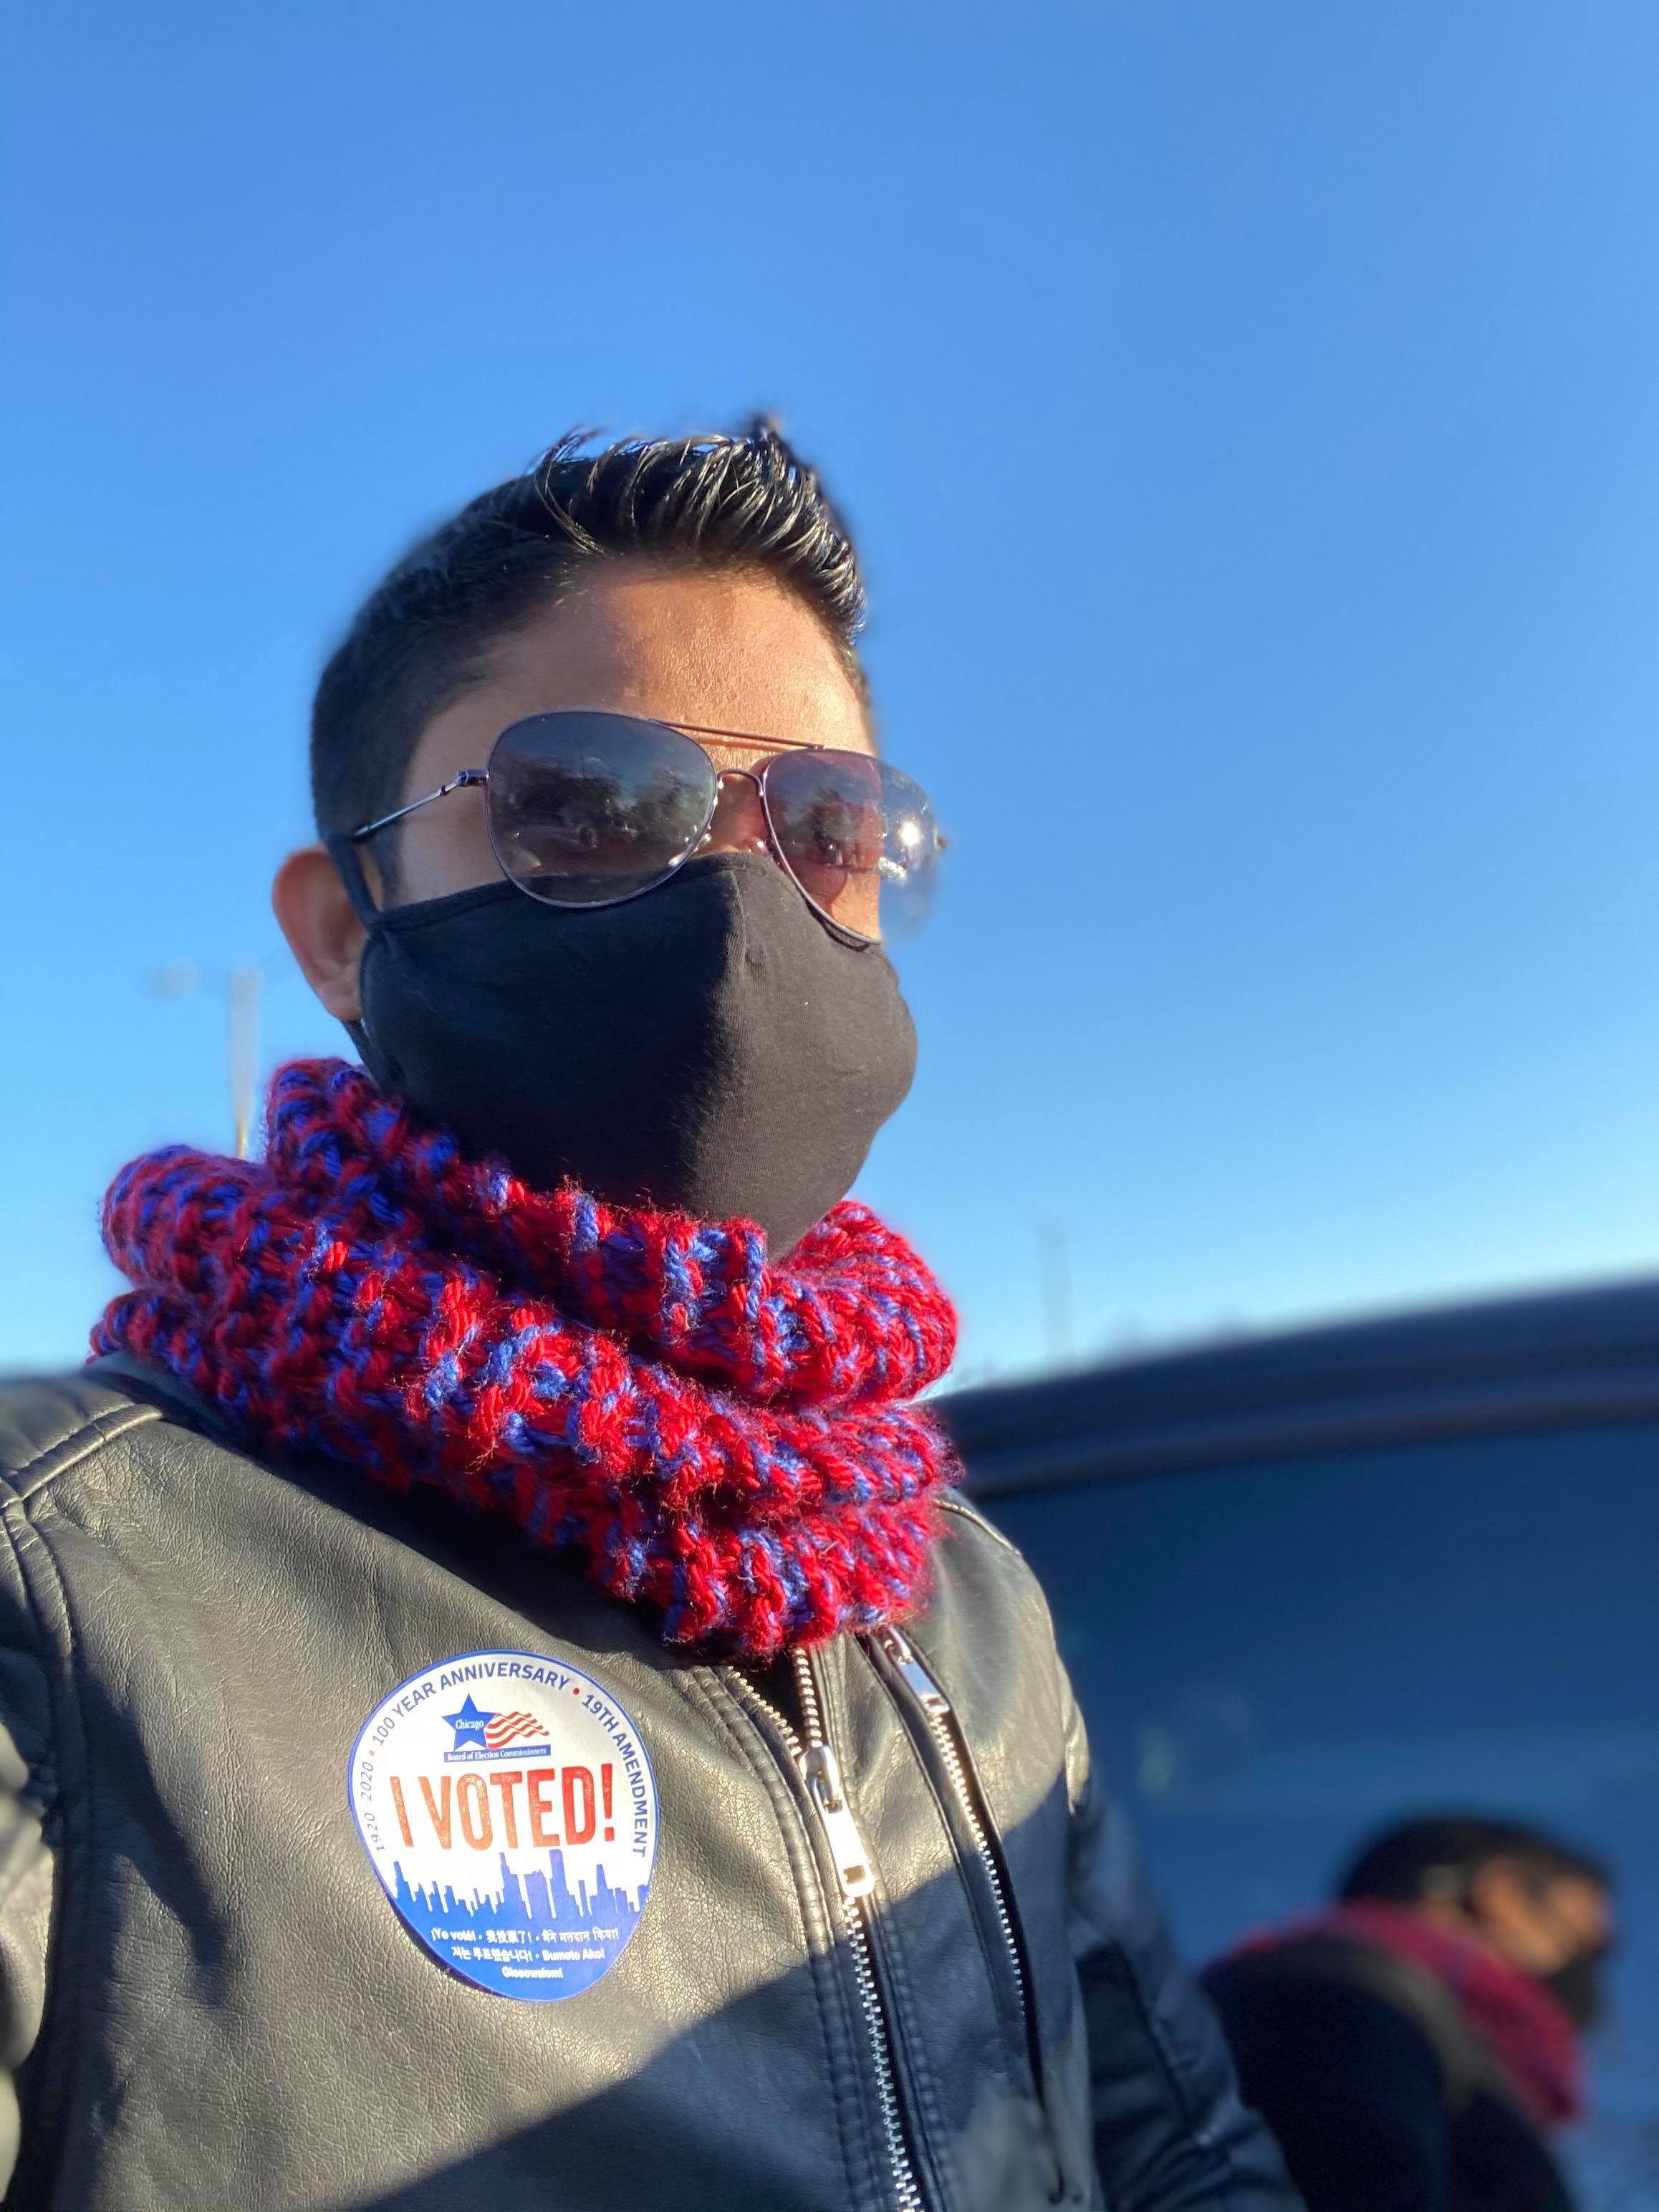 """A Rohingya man in sunglasses, black mask, red and blue scarf, and leather jacket poses with his """"I voted"""" sticker. He is outside on a clear, sunny day."""